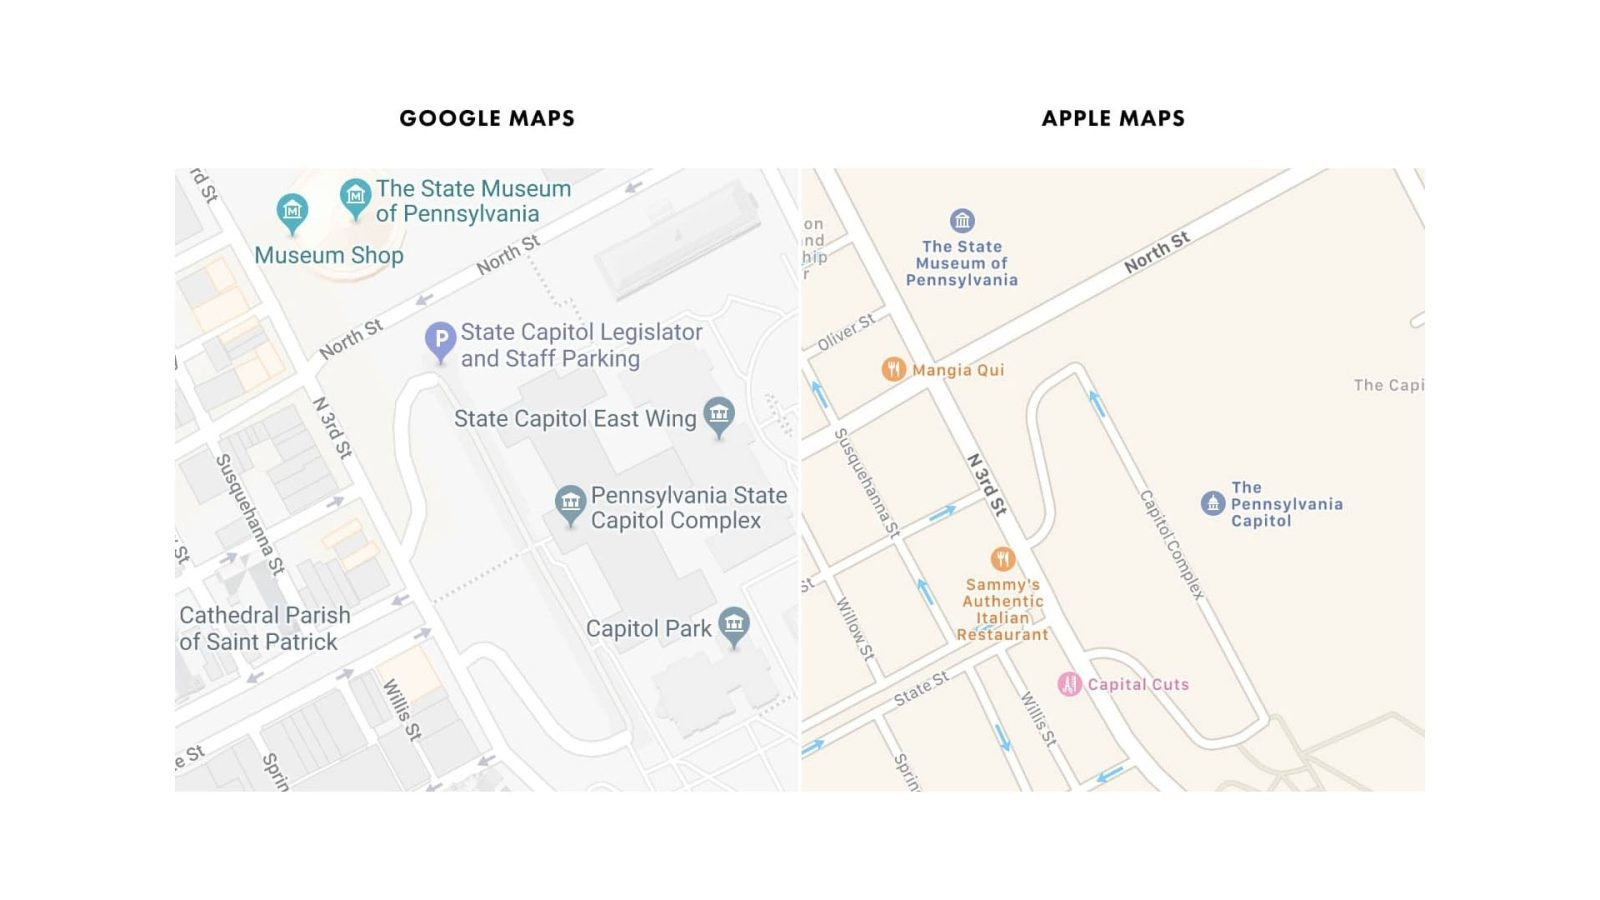 In-depth analysis compares quality of Apple's mapping data against Google's, highlights challenges Apple faces to compete